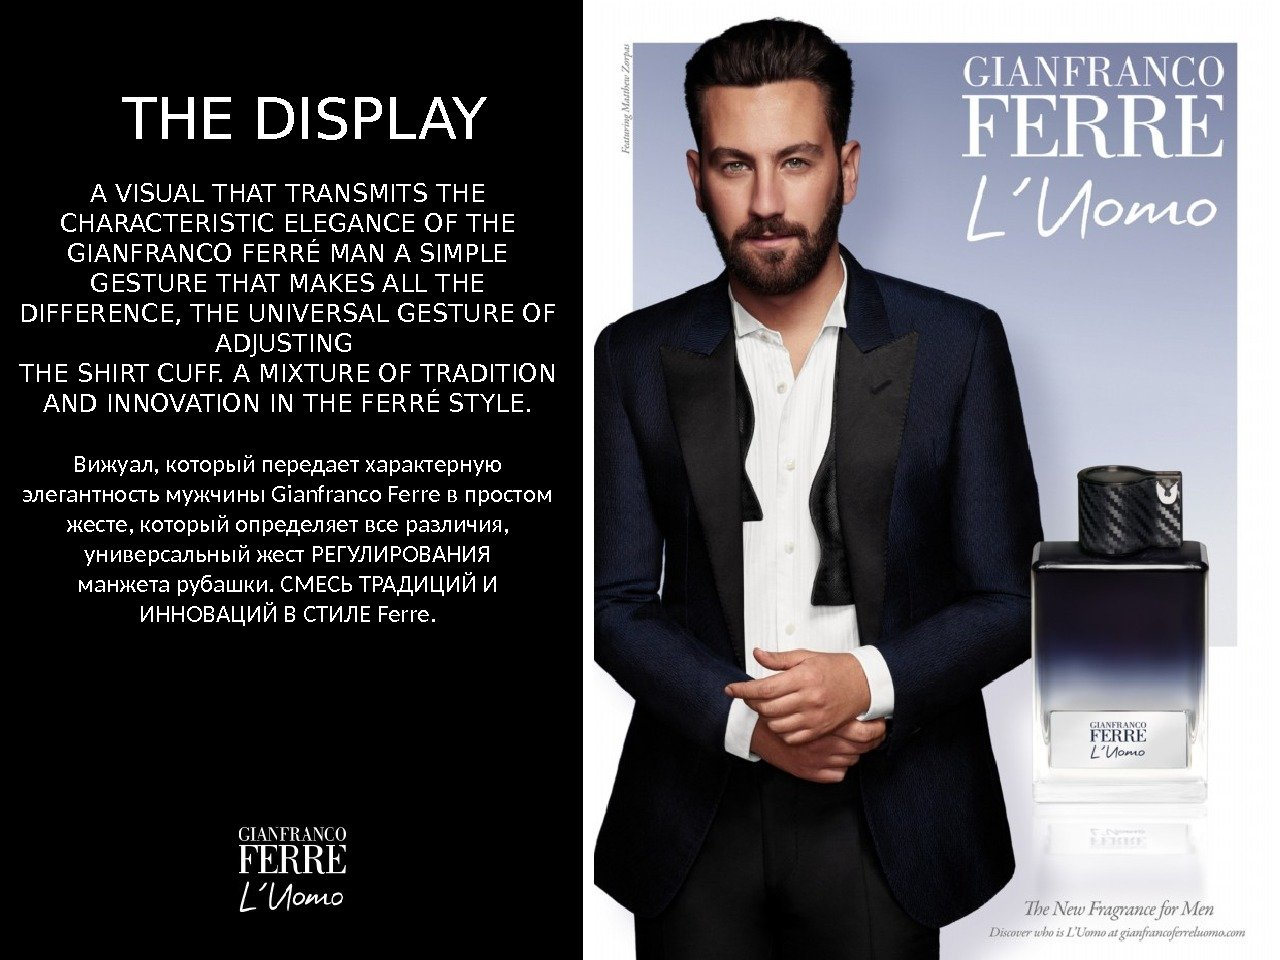 A VISUAL THAT TRANSMITS THE CHARACTERISTIC ELEGANCE OF THE GIANFRANCO FERRÉ MAN A SIMPLE